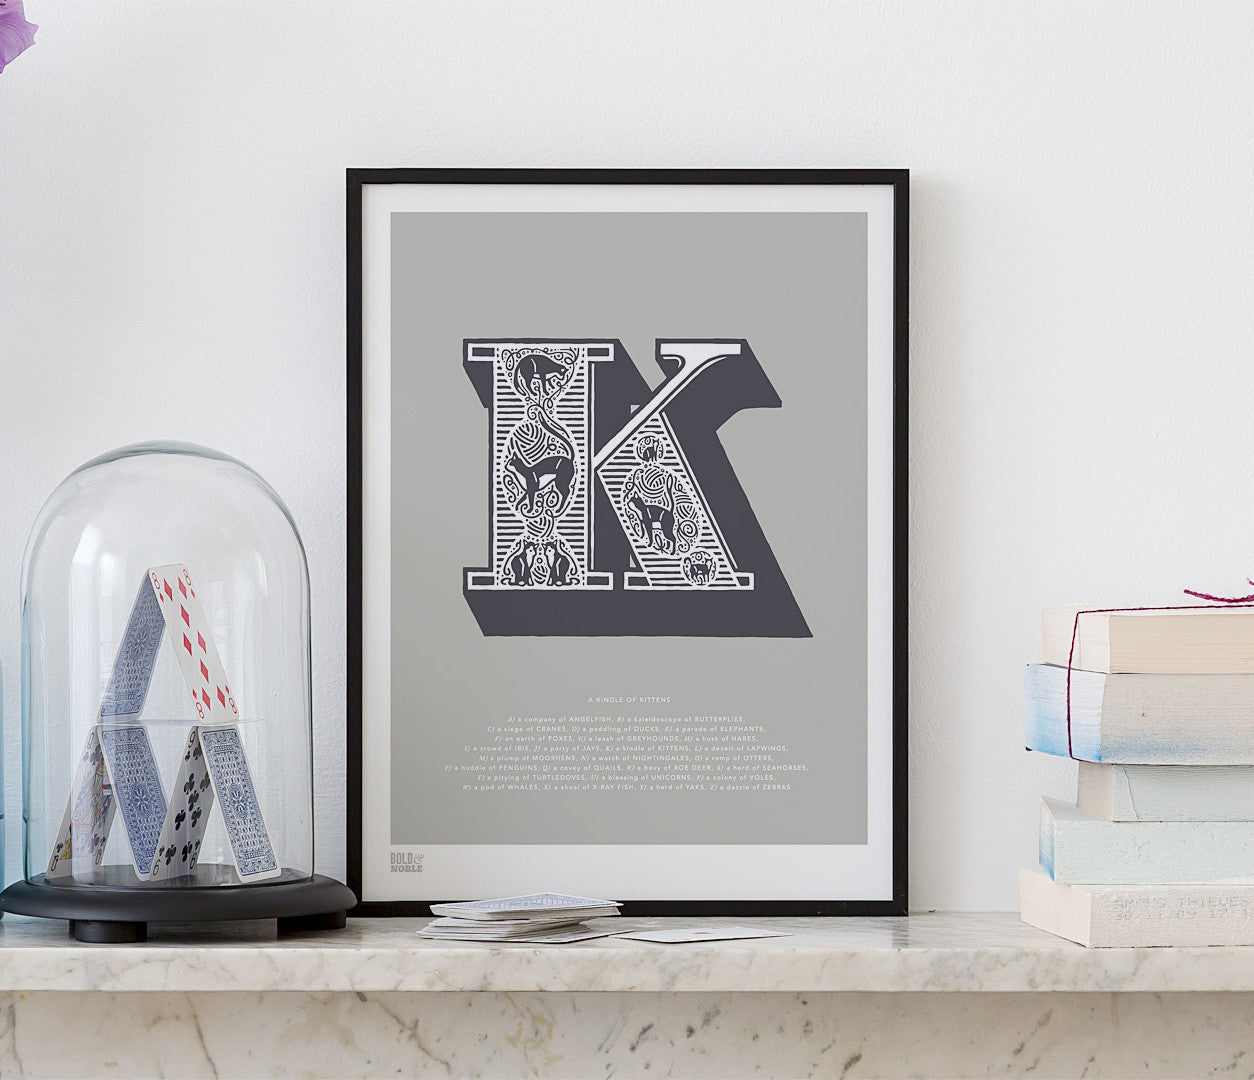 Pictures and Wall Art, Screen Printed Illustrated Letter K design in putty grey